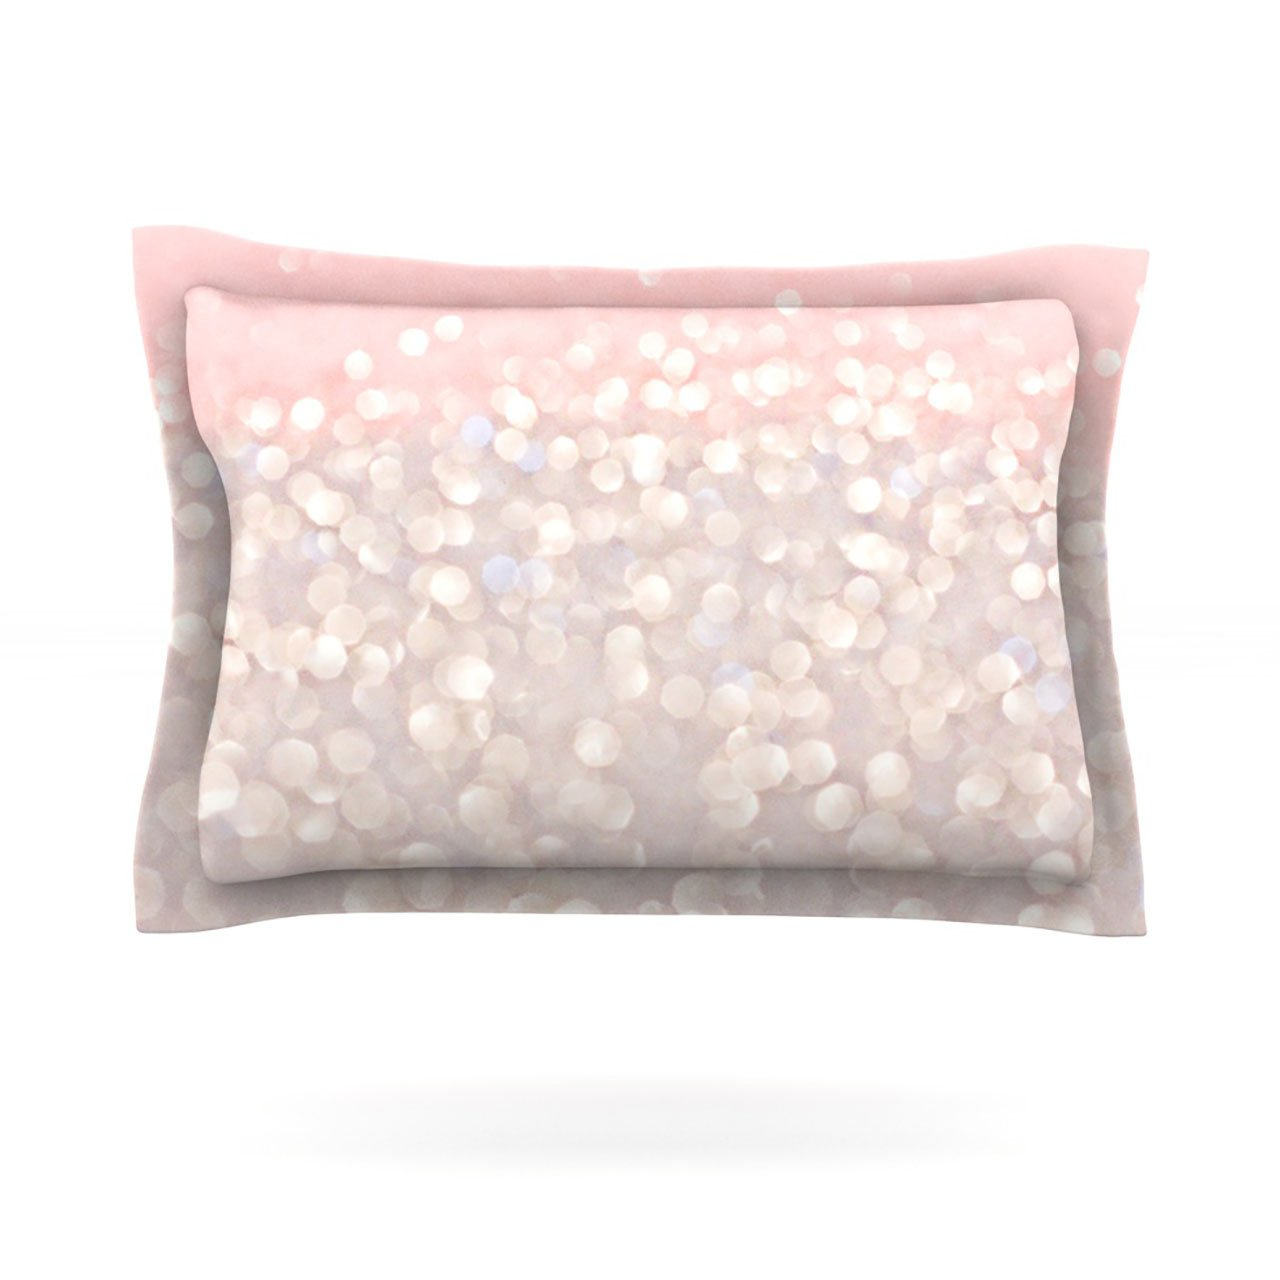 Kess InHouse Debbra Obertanec Magical Pink Glitter Cotton Pillow Sham, 40 by 20-Inch kess inhouse julie hamilton snowflake sky blue woven sham 40 by 20 inch